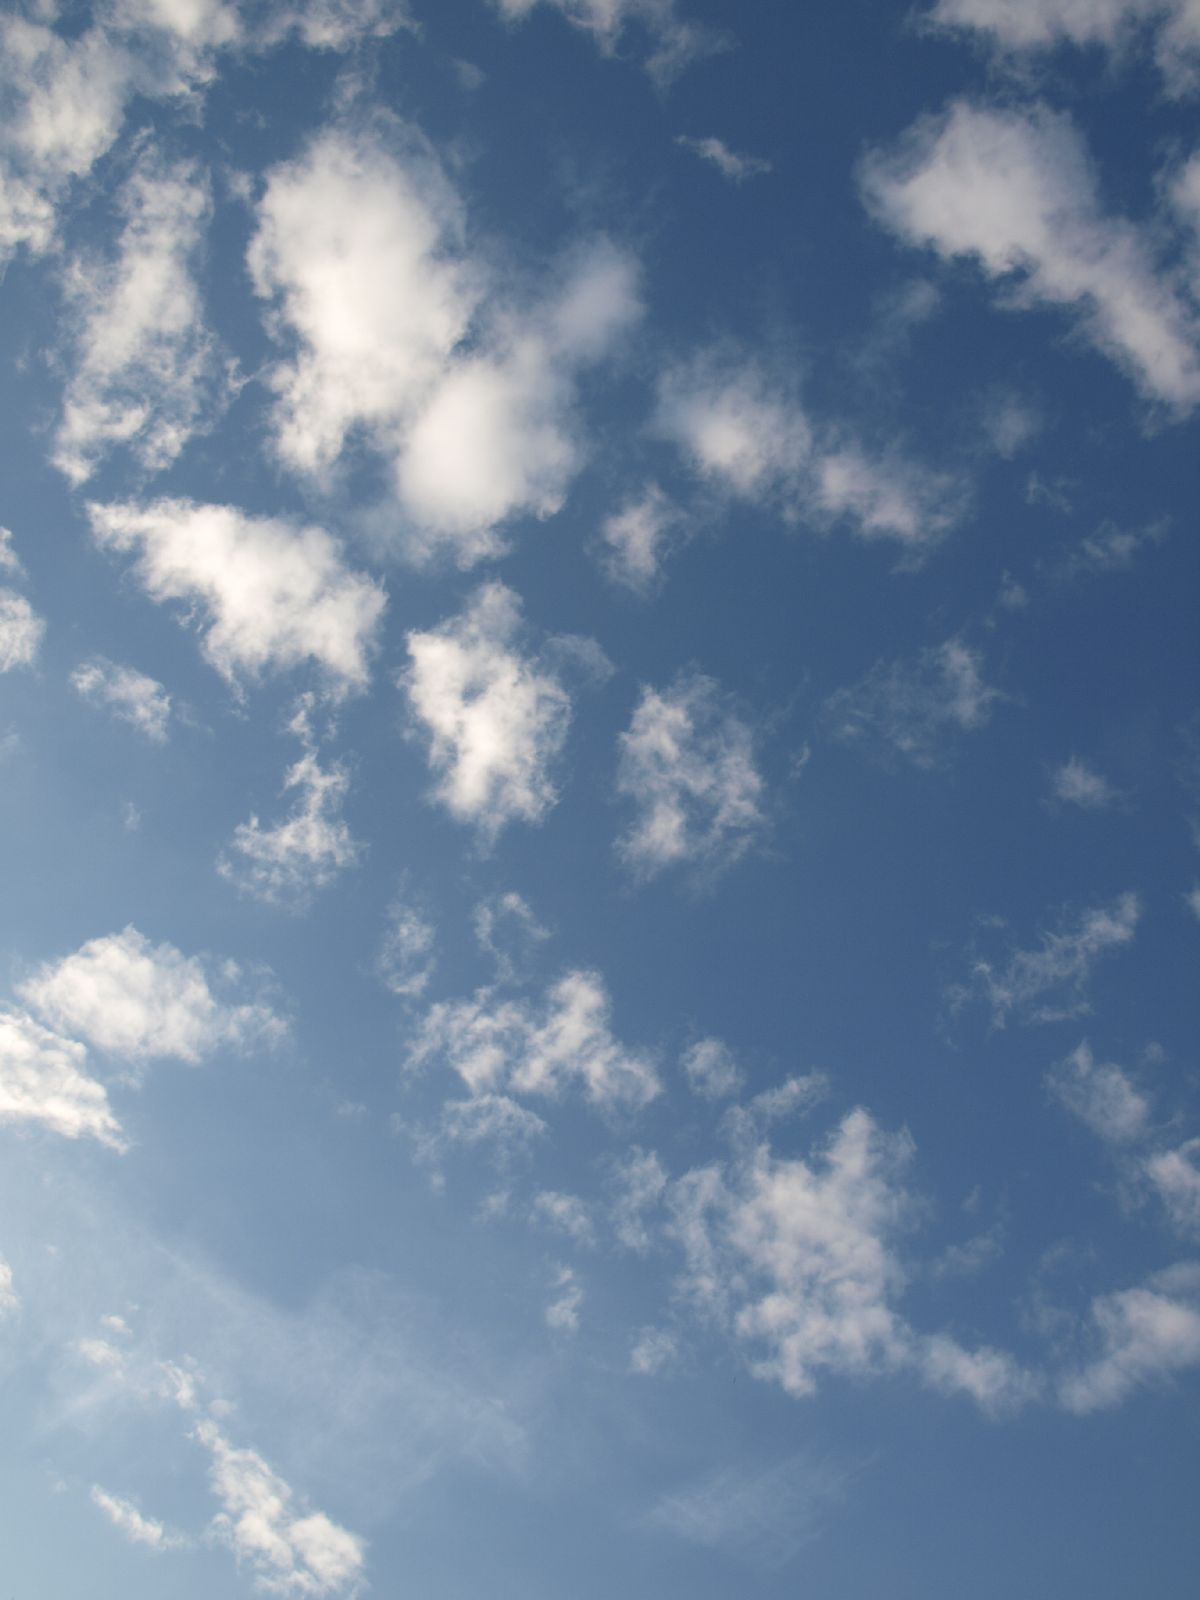 Sky_Clouds_Photo_Texture_A_P4120979